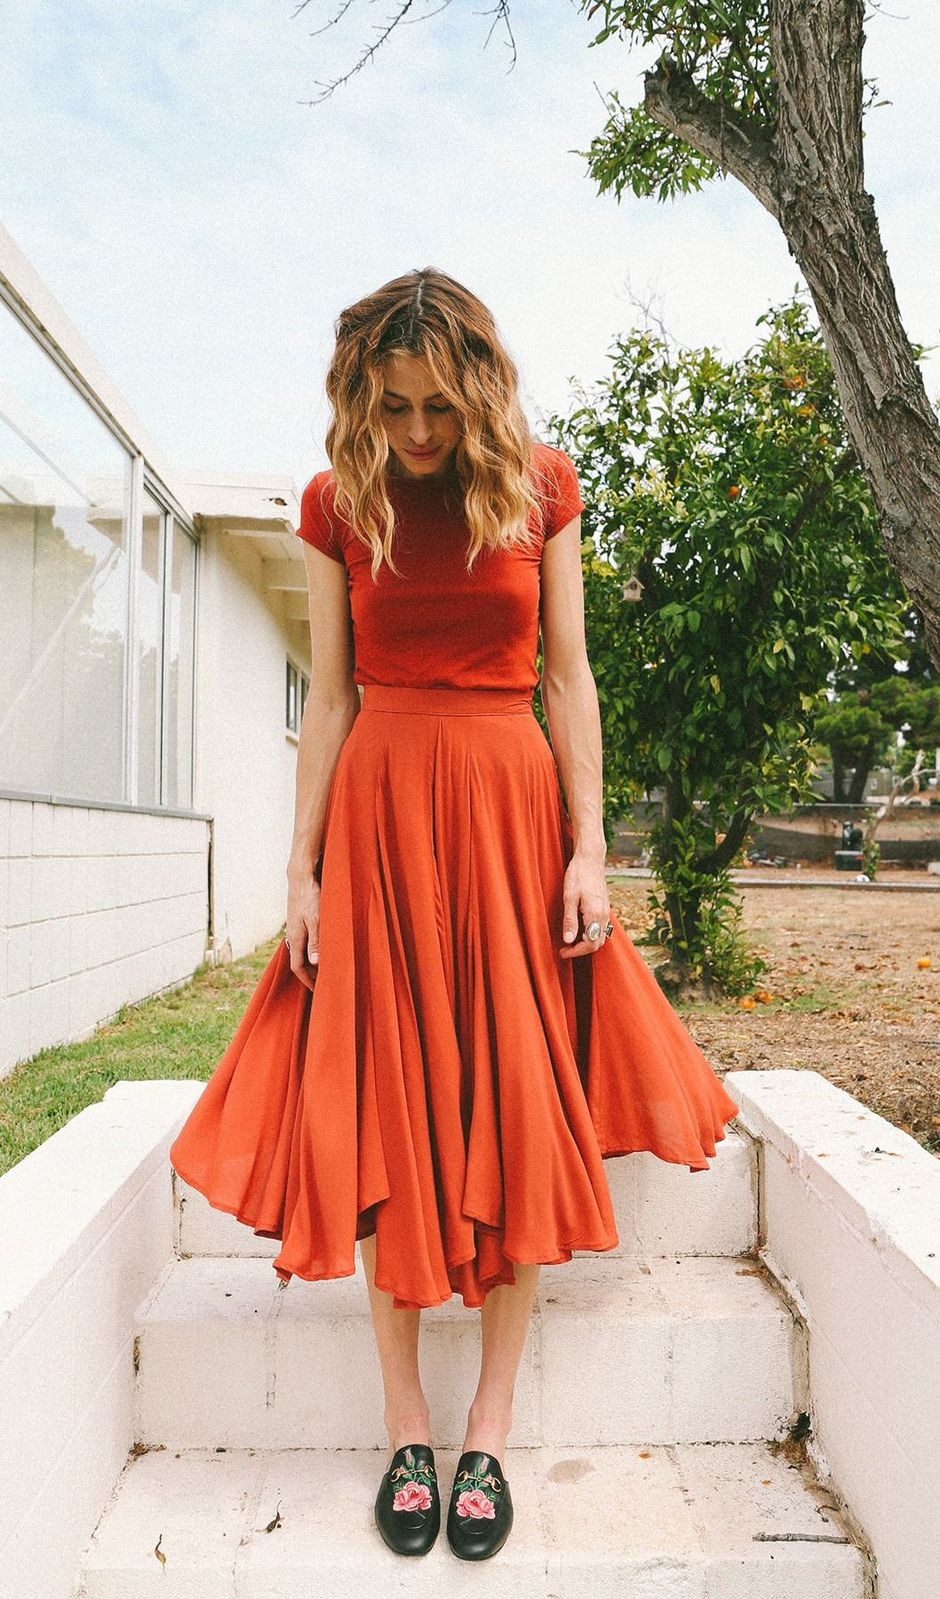 55 Orange Outfit Ideas That Make You Look Young and Fresh 3